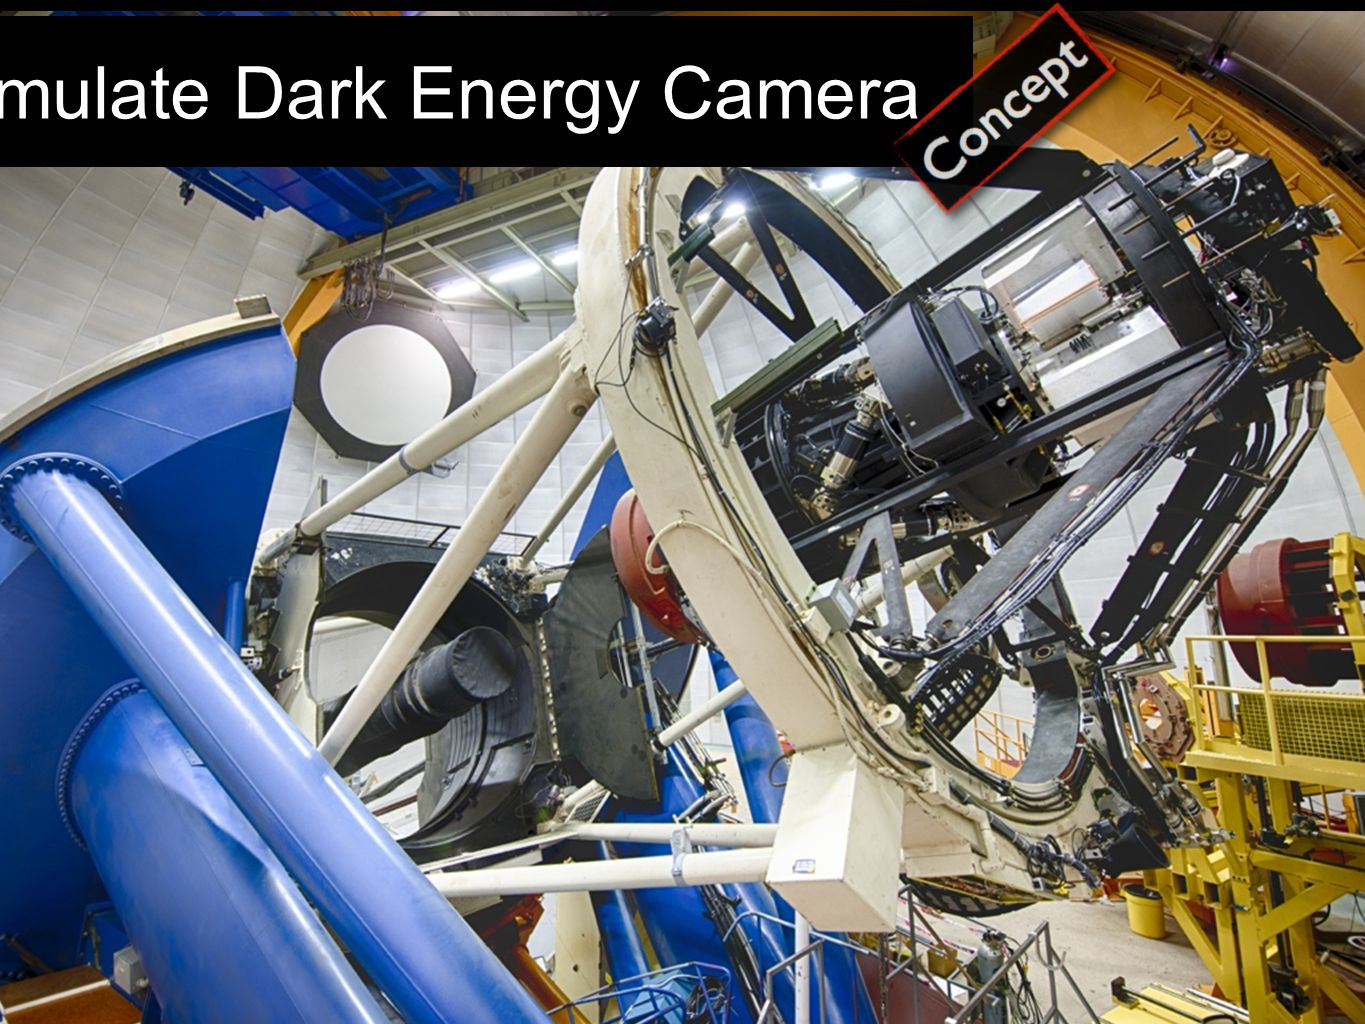 Simulate Dark Energy Camera